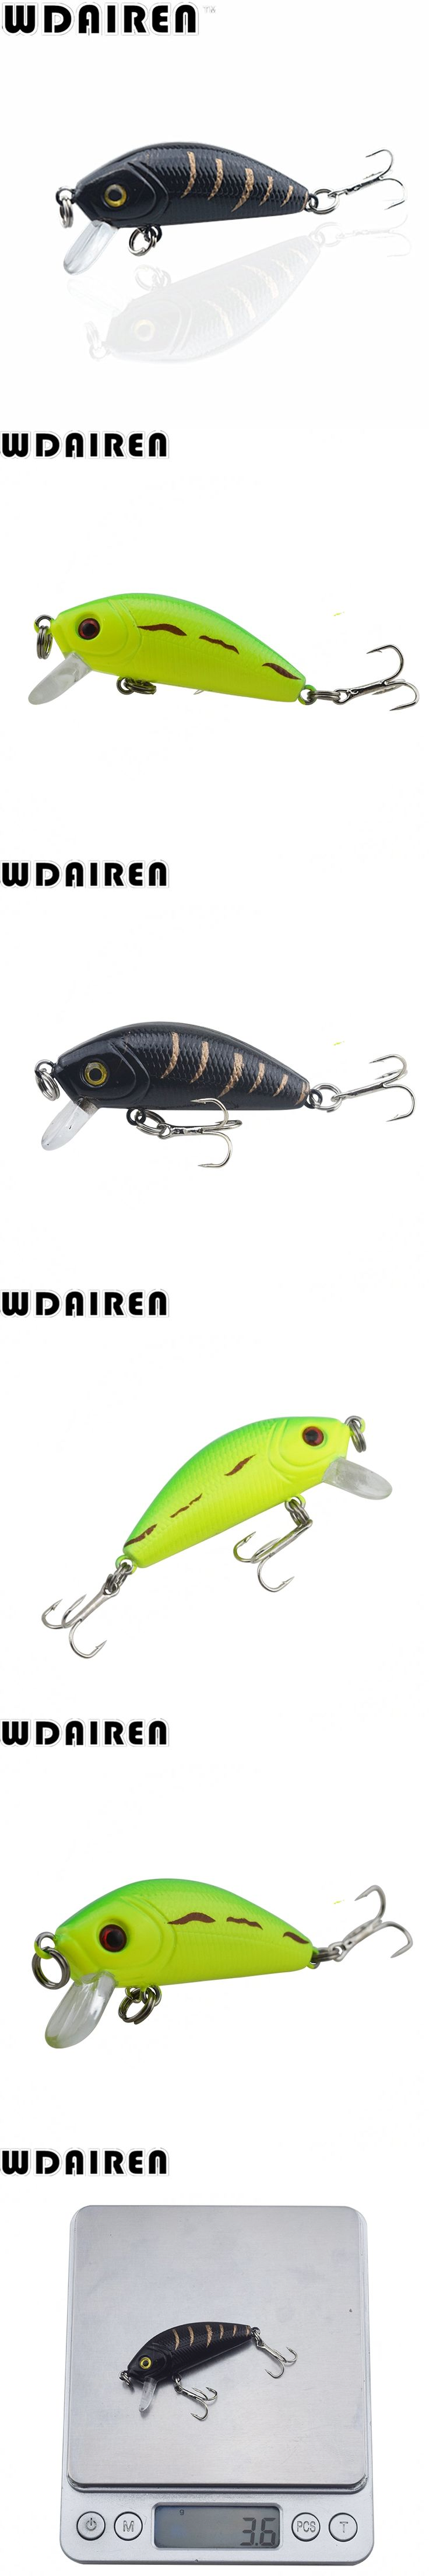 Fishing Lure In Bait Deep Swim Hard Bait Fish Tackle 10cm 13g Float Minnow Fishing Fishing Accessories Multi Jointed Hard Bait 3 Pure White And Translucent Sports & Entertainment Fishing